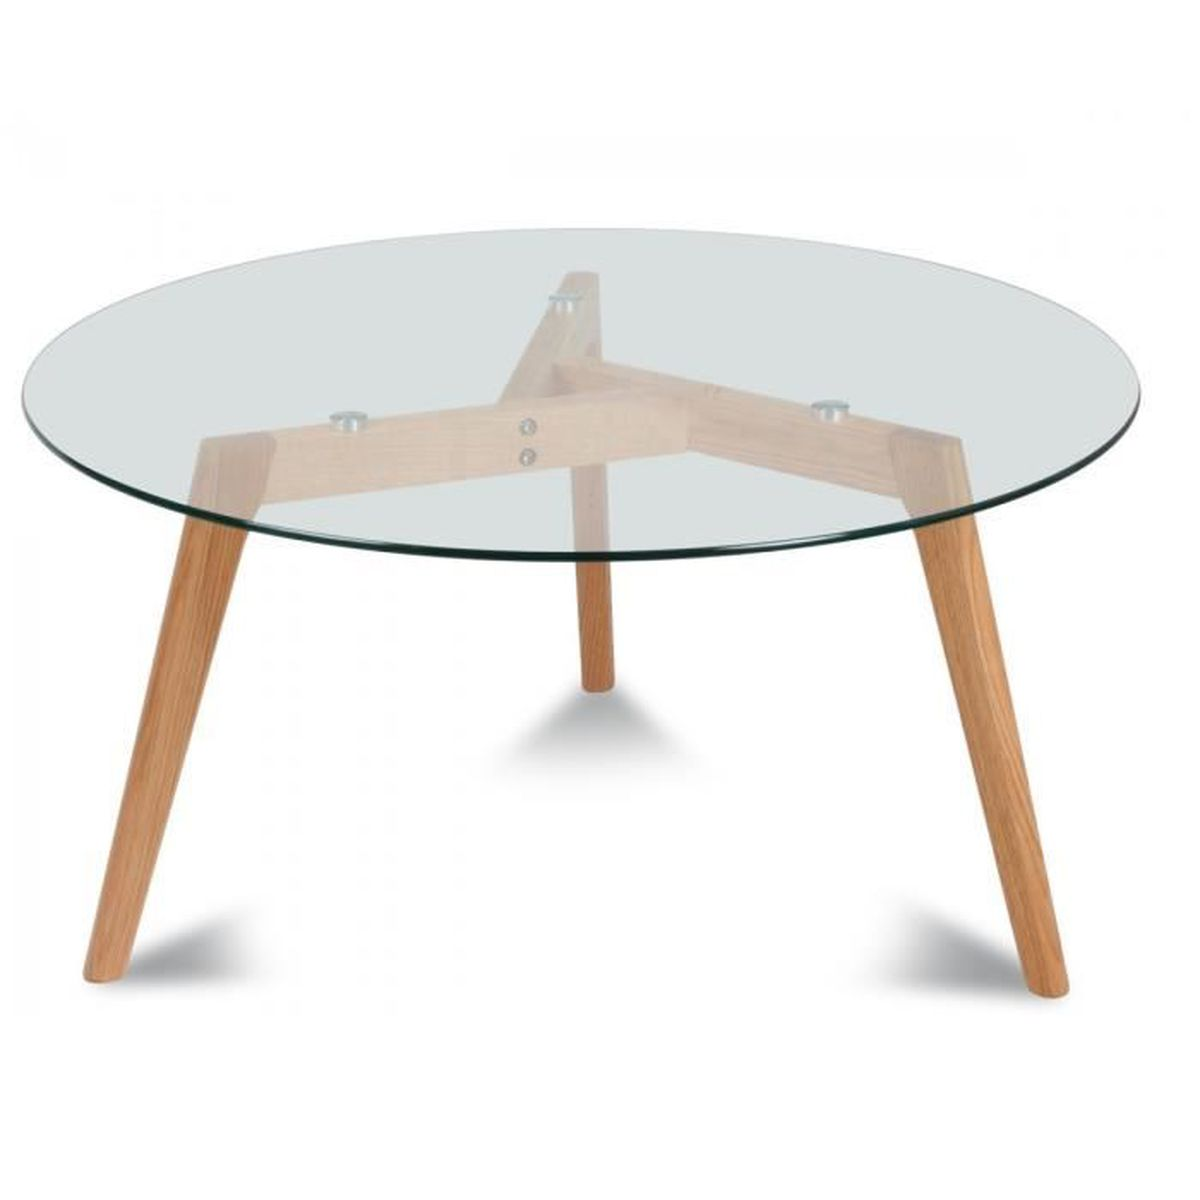 table basse scandinave ronde 60cm plateau en verre et pied en bois achat vente table basse. Black Bedroom Furniture Sets. Home Design Ideas